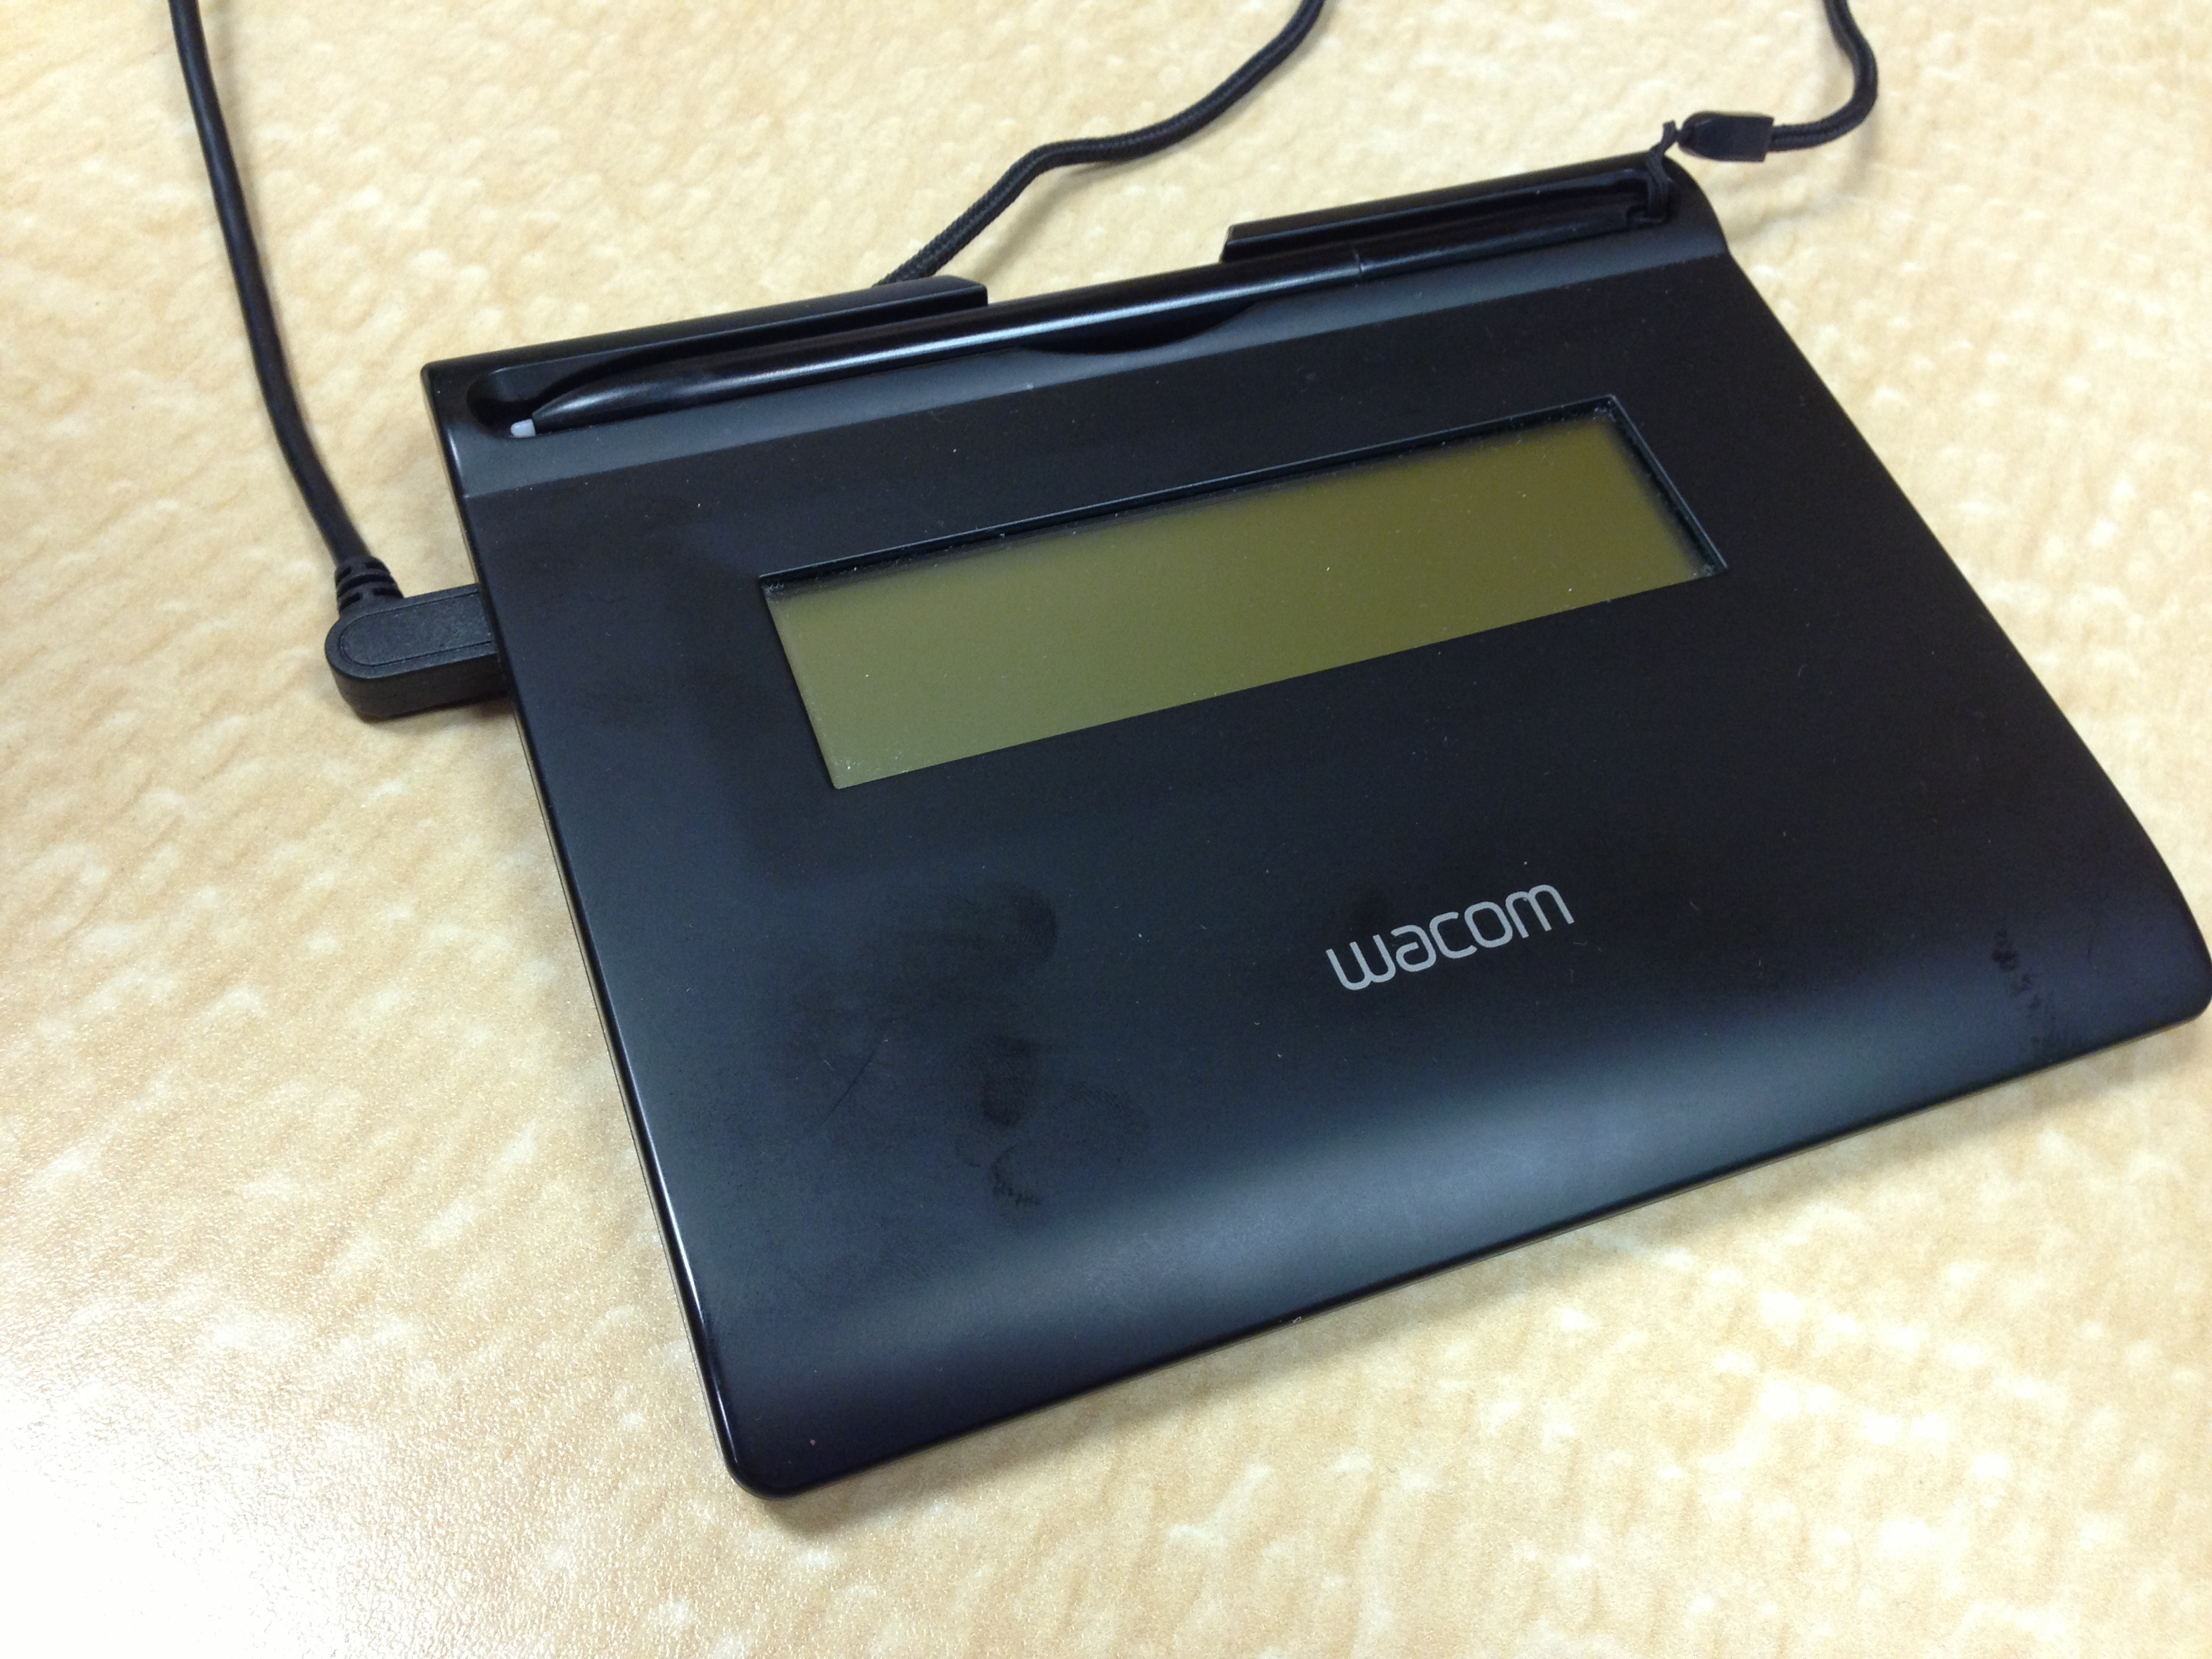 Wacom Lcd Tablet Dtz-1200w Driver For Windows Xp download